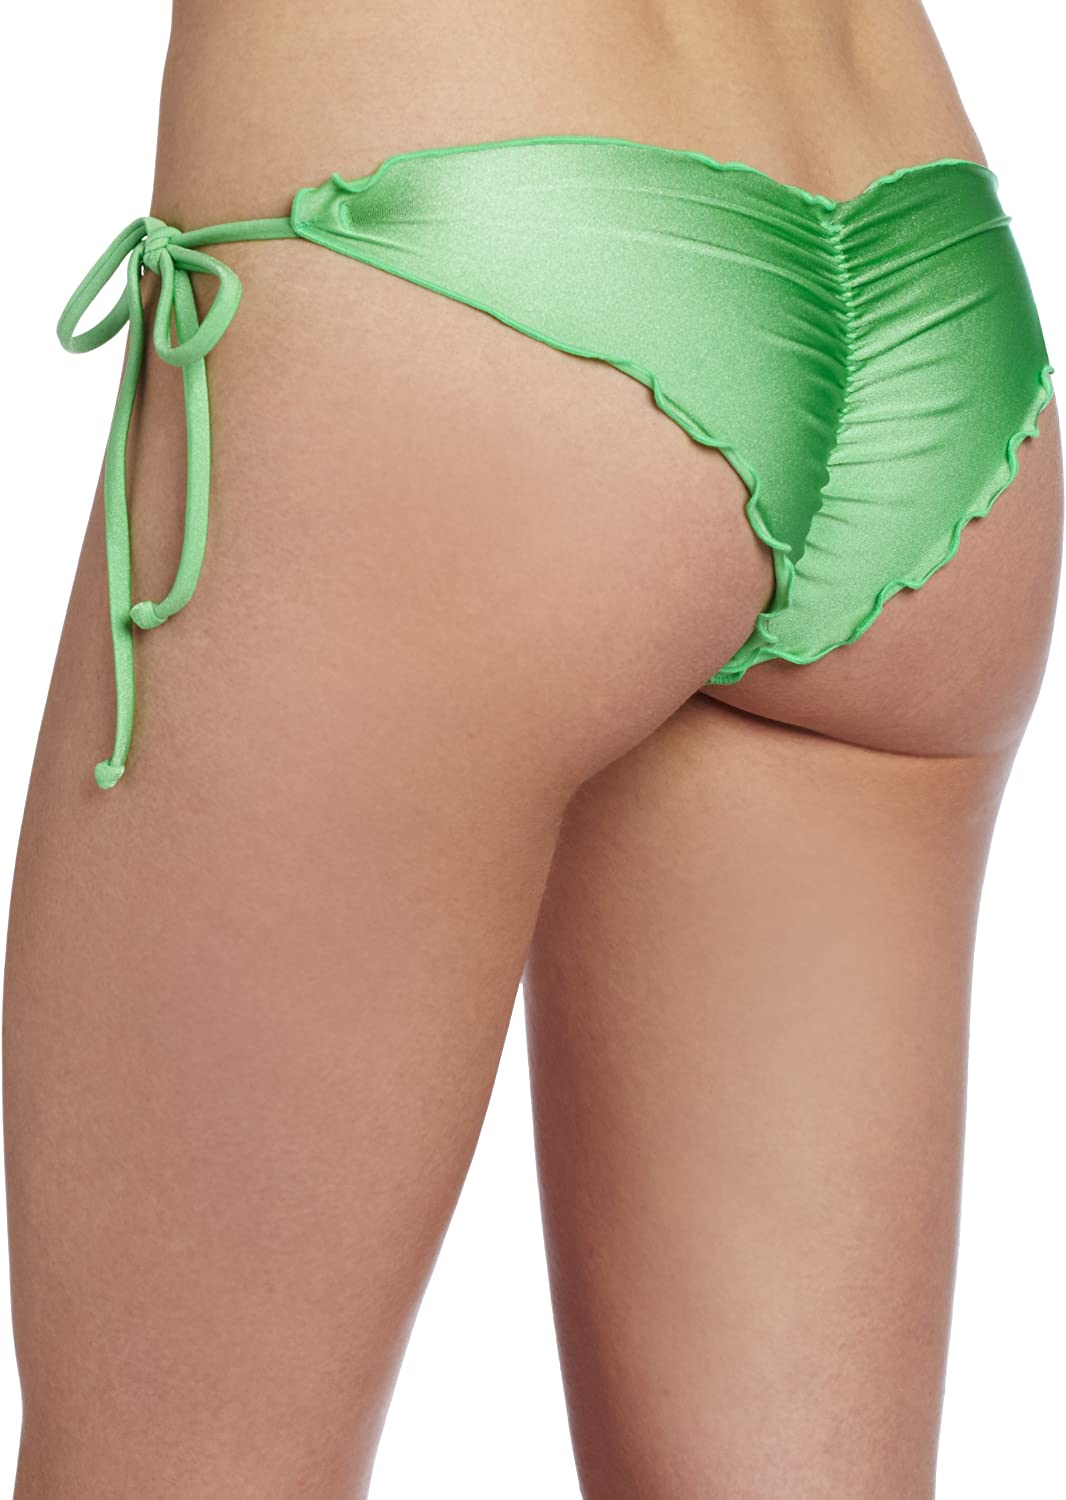 Luli Fama Womens Cosita Buena Wavy Tie-Side Brazilian Bikini Bottom